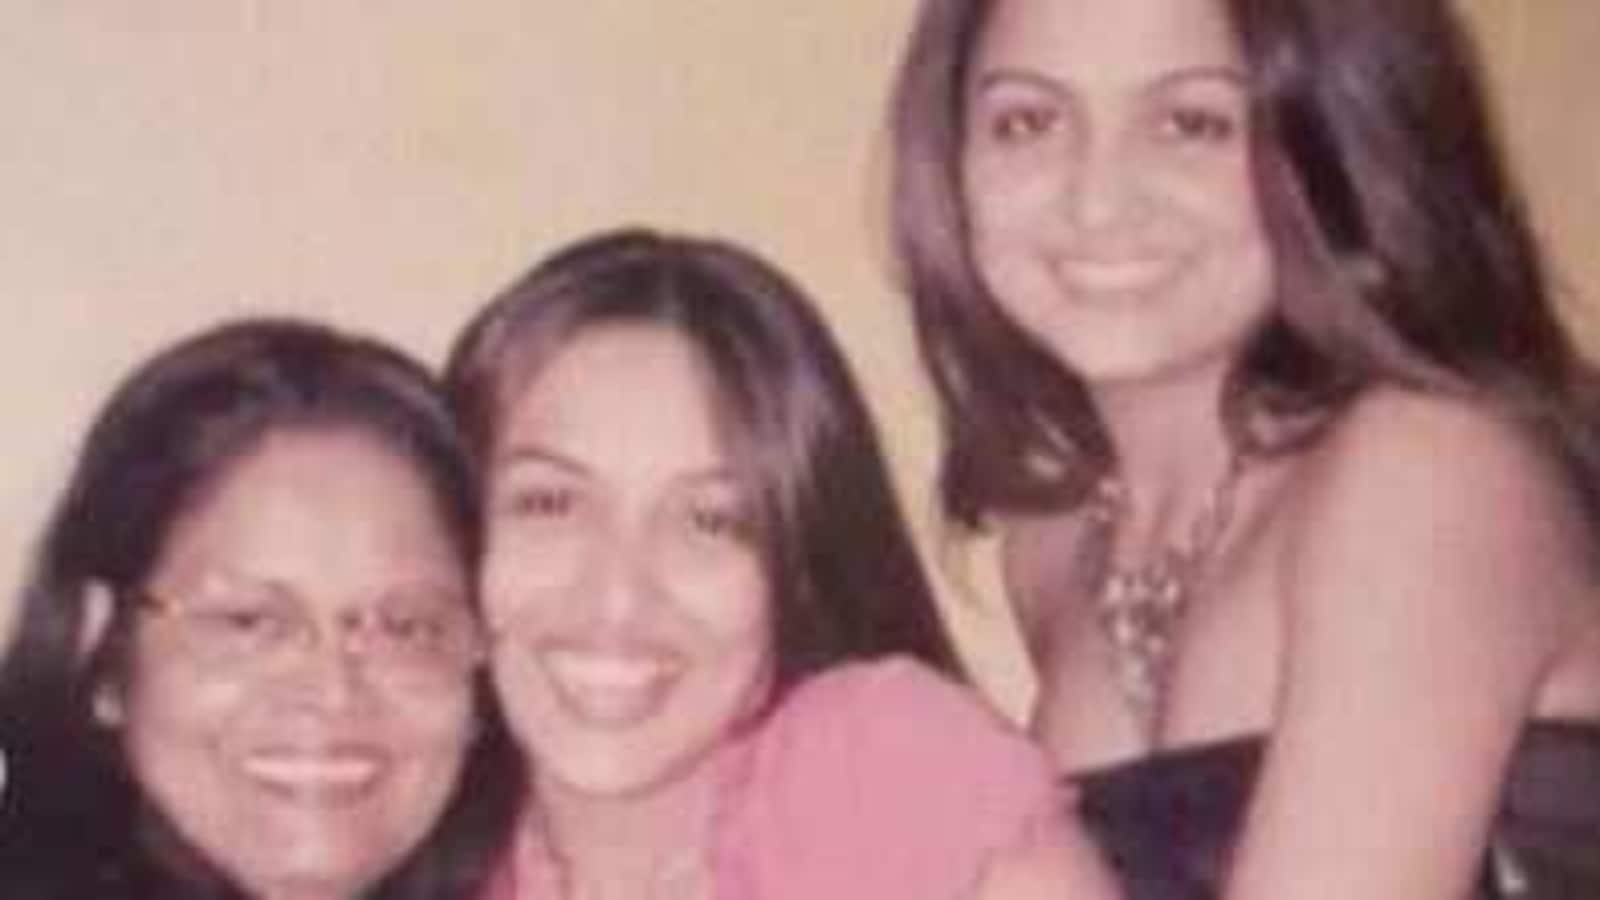 Malaika Arora shares throwback pic with mom to wish her on birthday, Karisma Kapoor sends her love - Hindustan Times